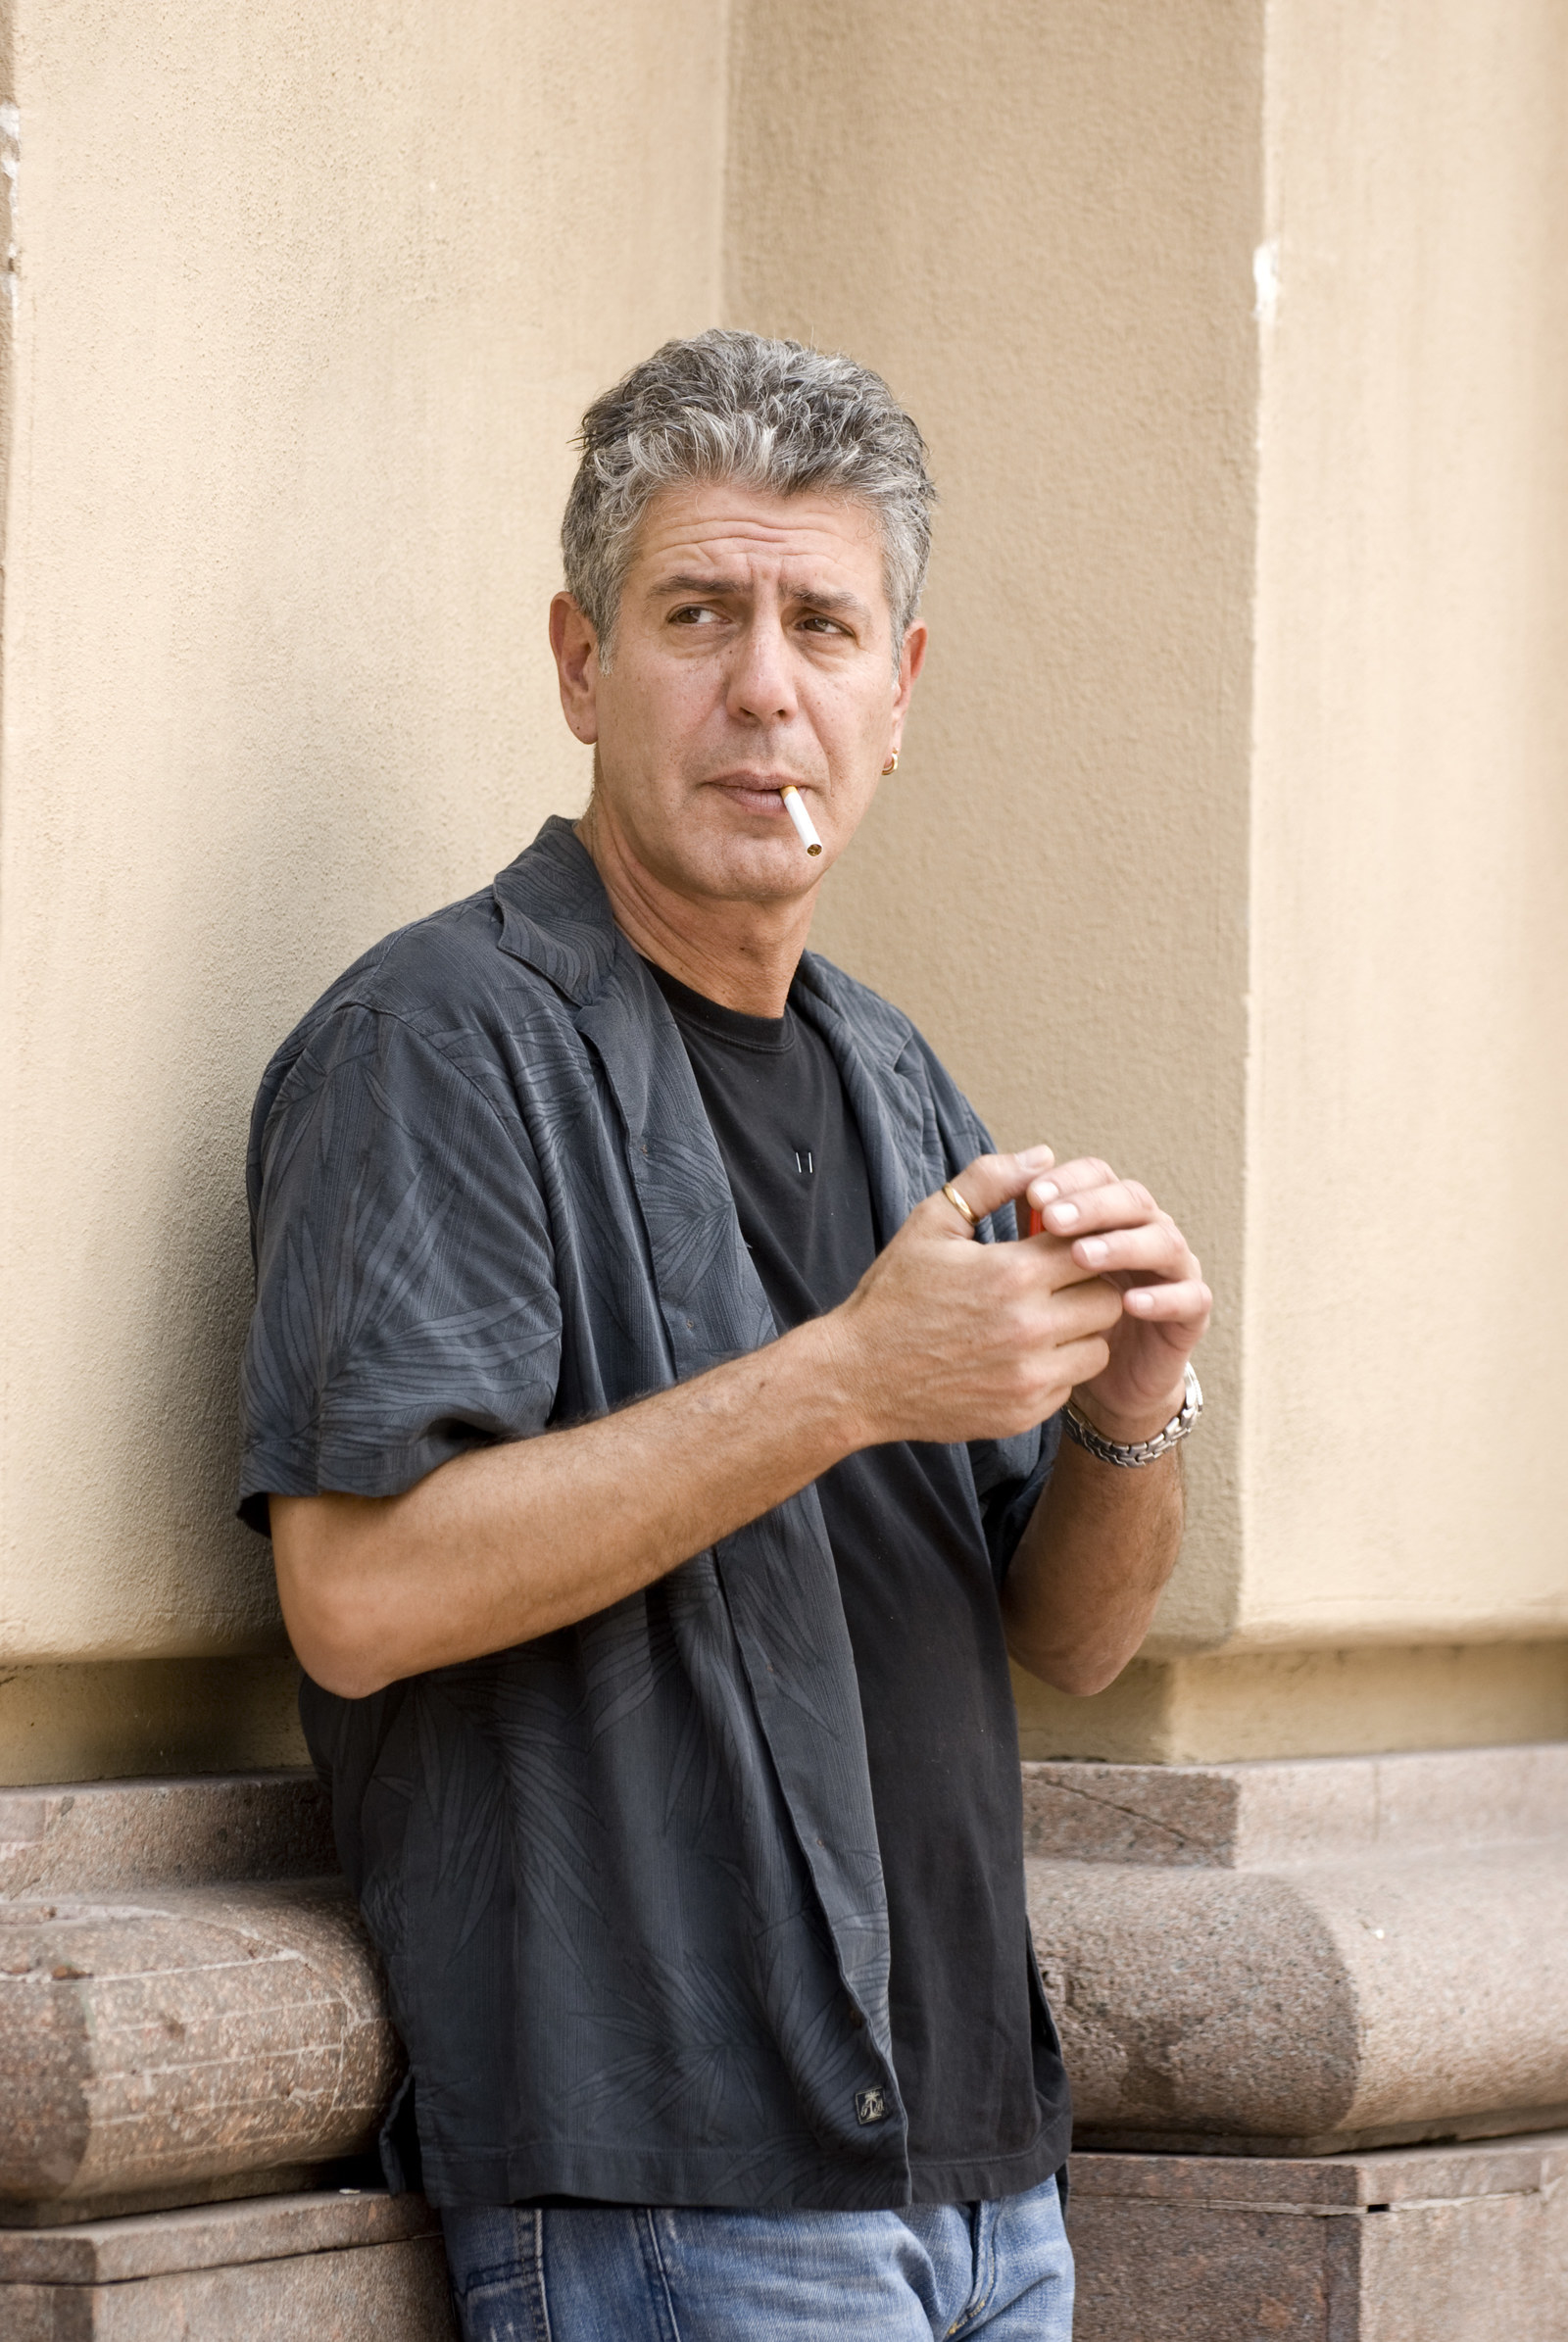 Anthony Bourdain at the Municipal Market in Sao Paulo, Brazil, while hosting No Reservations.